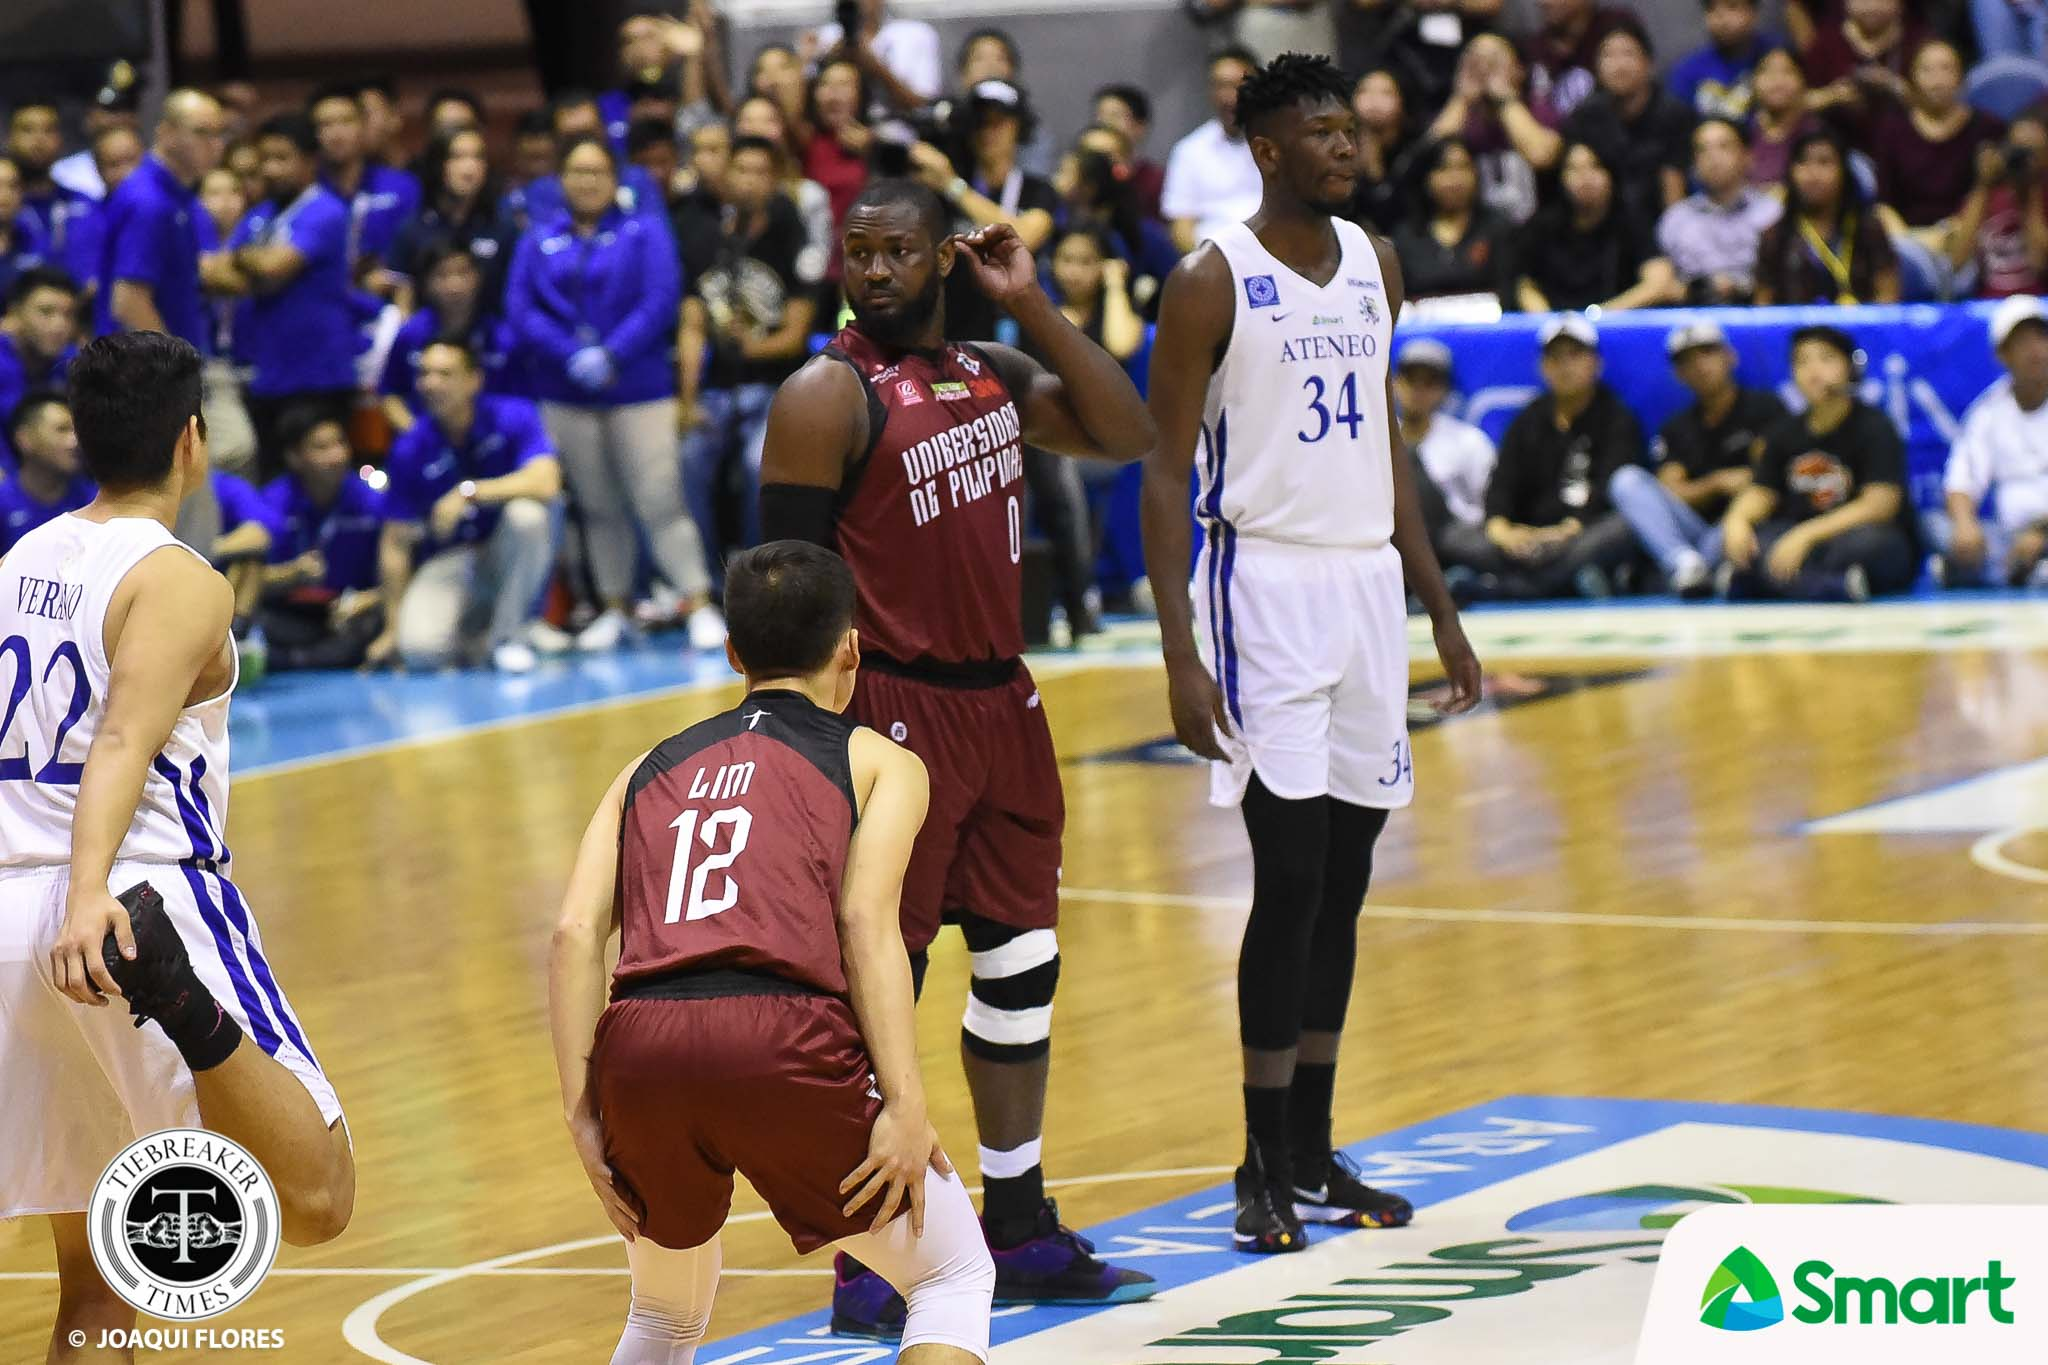 Tiebreaker Times Bright Akhuetie forced to remove metal knee brace as Ateneo raises concern for players ADMU Basketball News UAAP UP  UP Men's Basketball UAAP Season 81 Men's Basketball UAAP Season 81 Tab Baldwin Bright Akhuetie Ateneo Men's Basketball